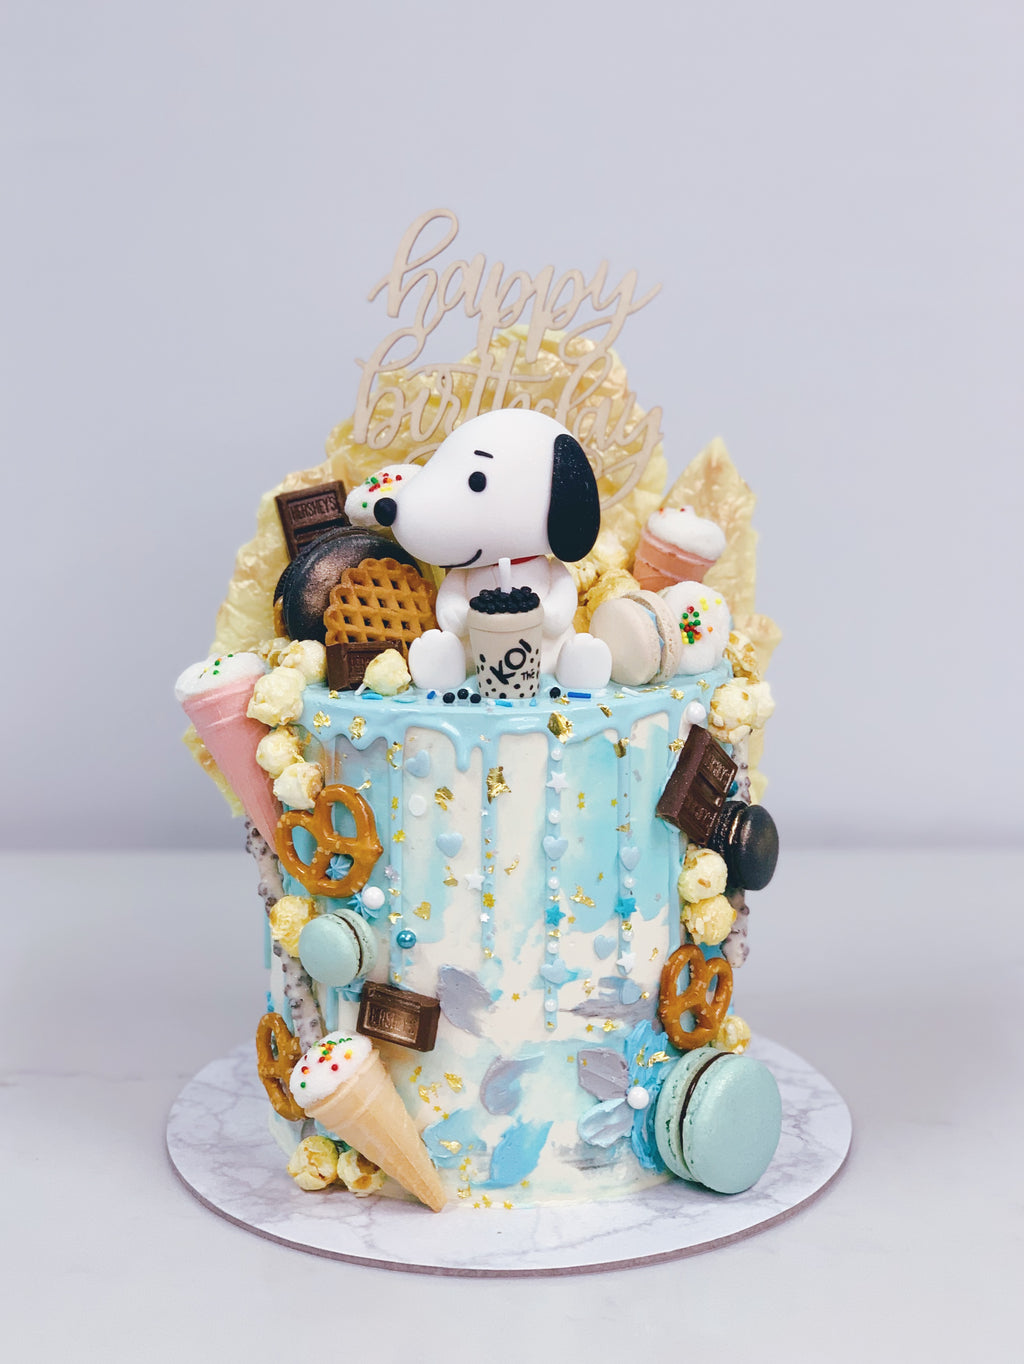 Snoopy Koi Blue Textured Drip Cake with Toppings and Chocolate Shards